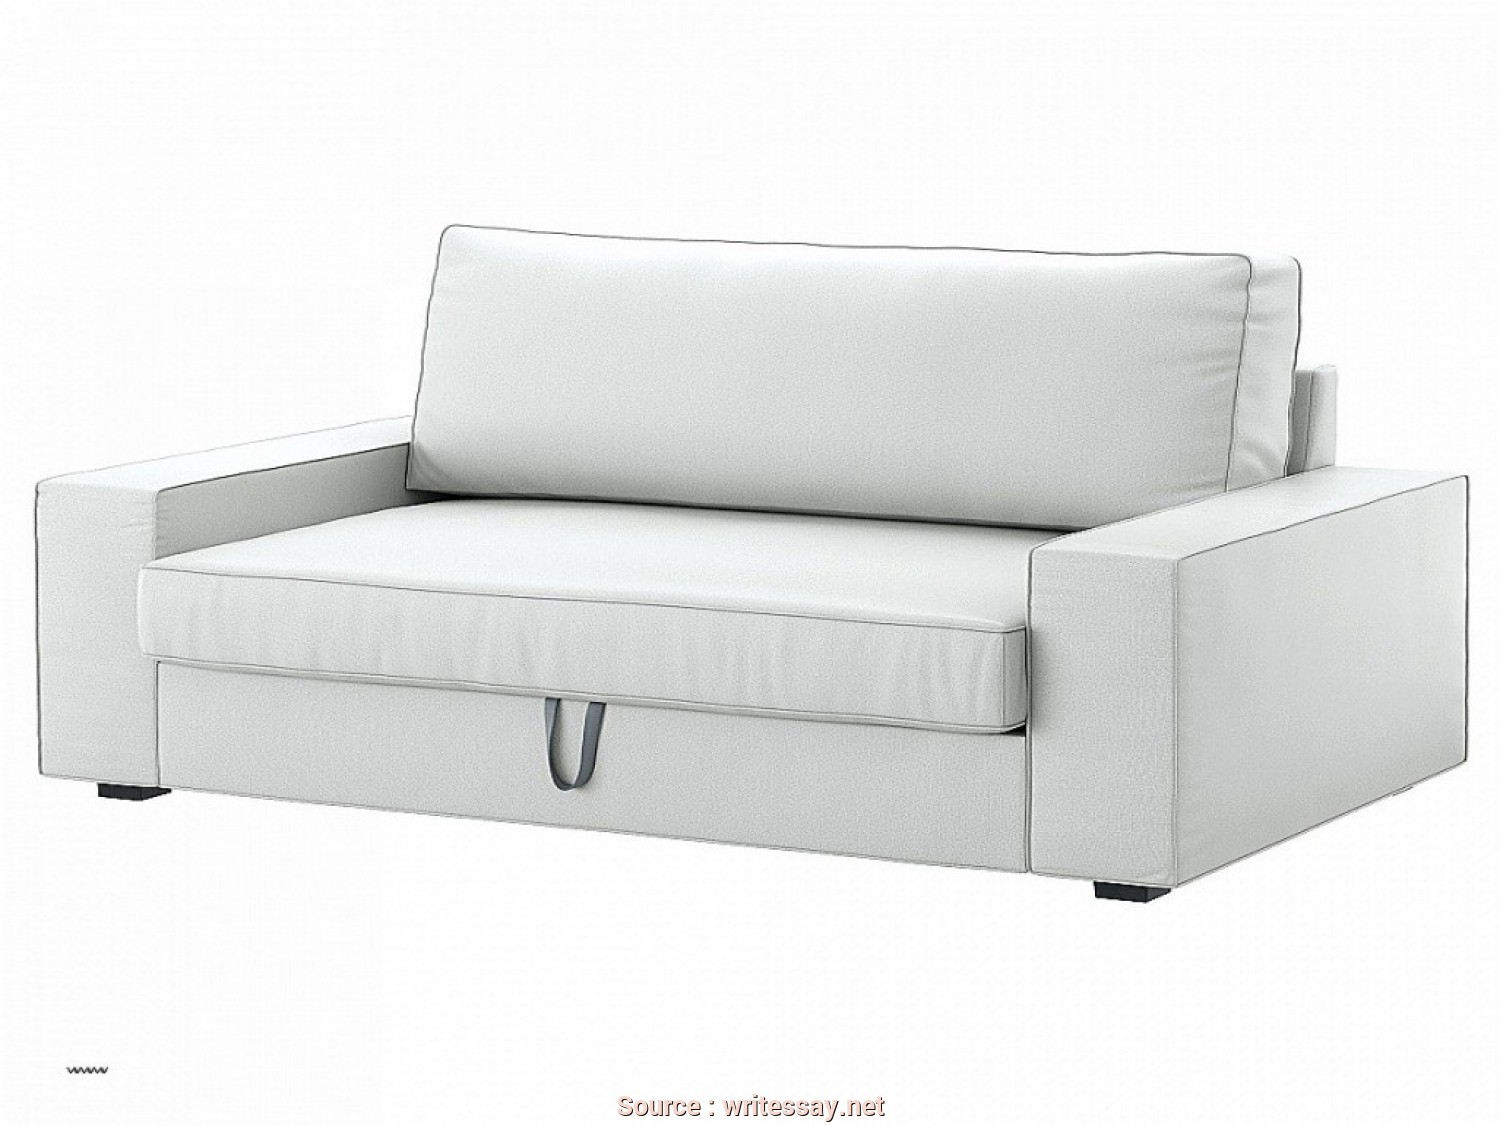 Futon A Vendre Ikea, Loveable Lit Divan Inspiration Divan, Ikea 22 Canape Hemnes Idees De Decoration